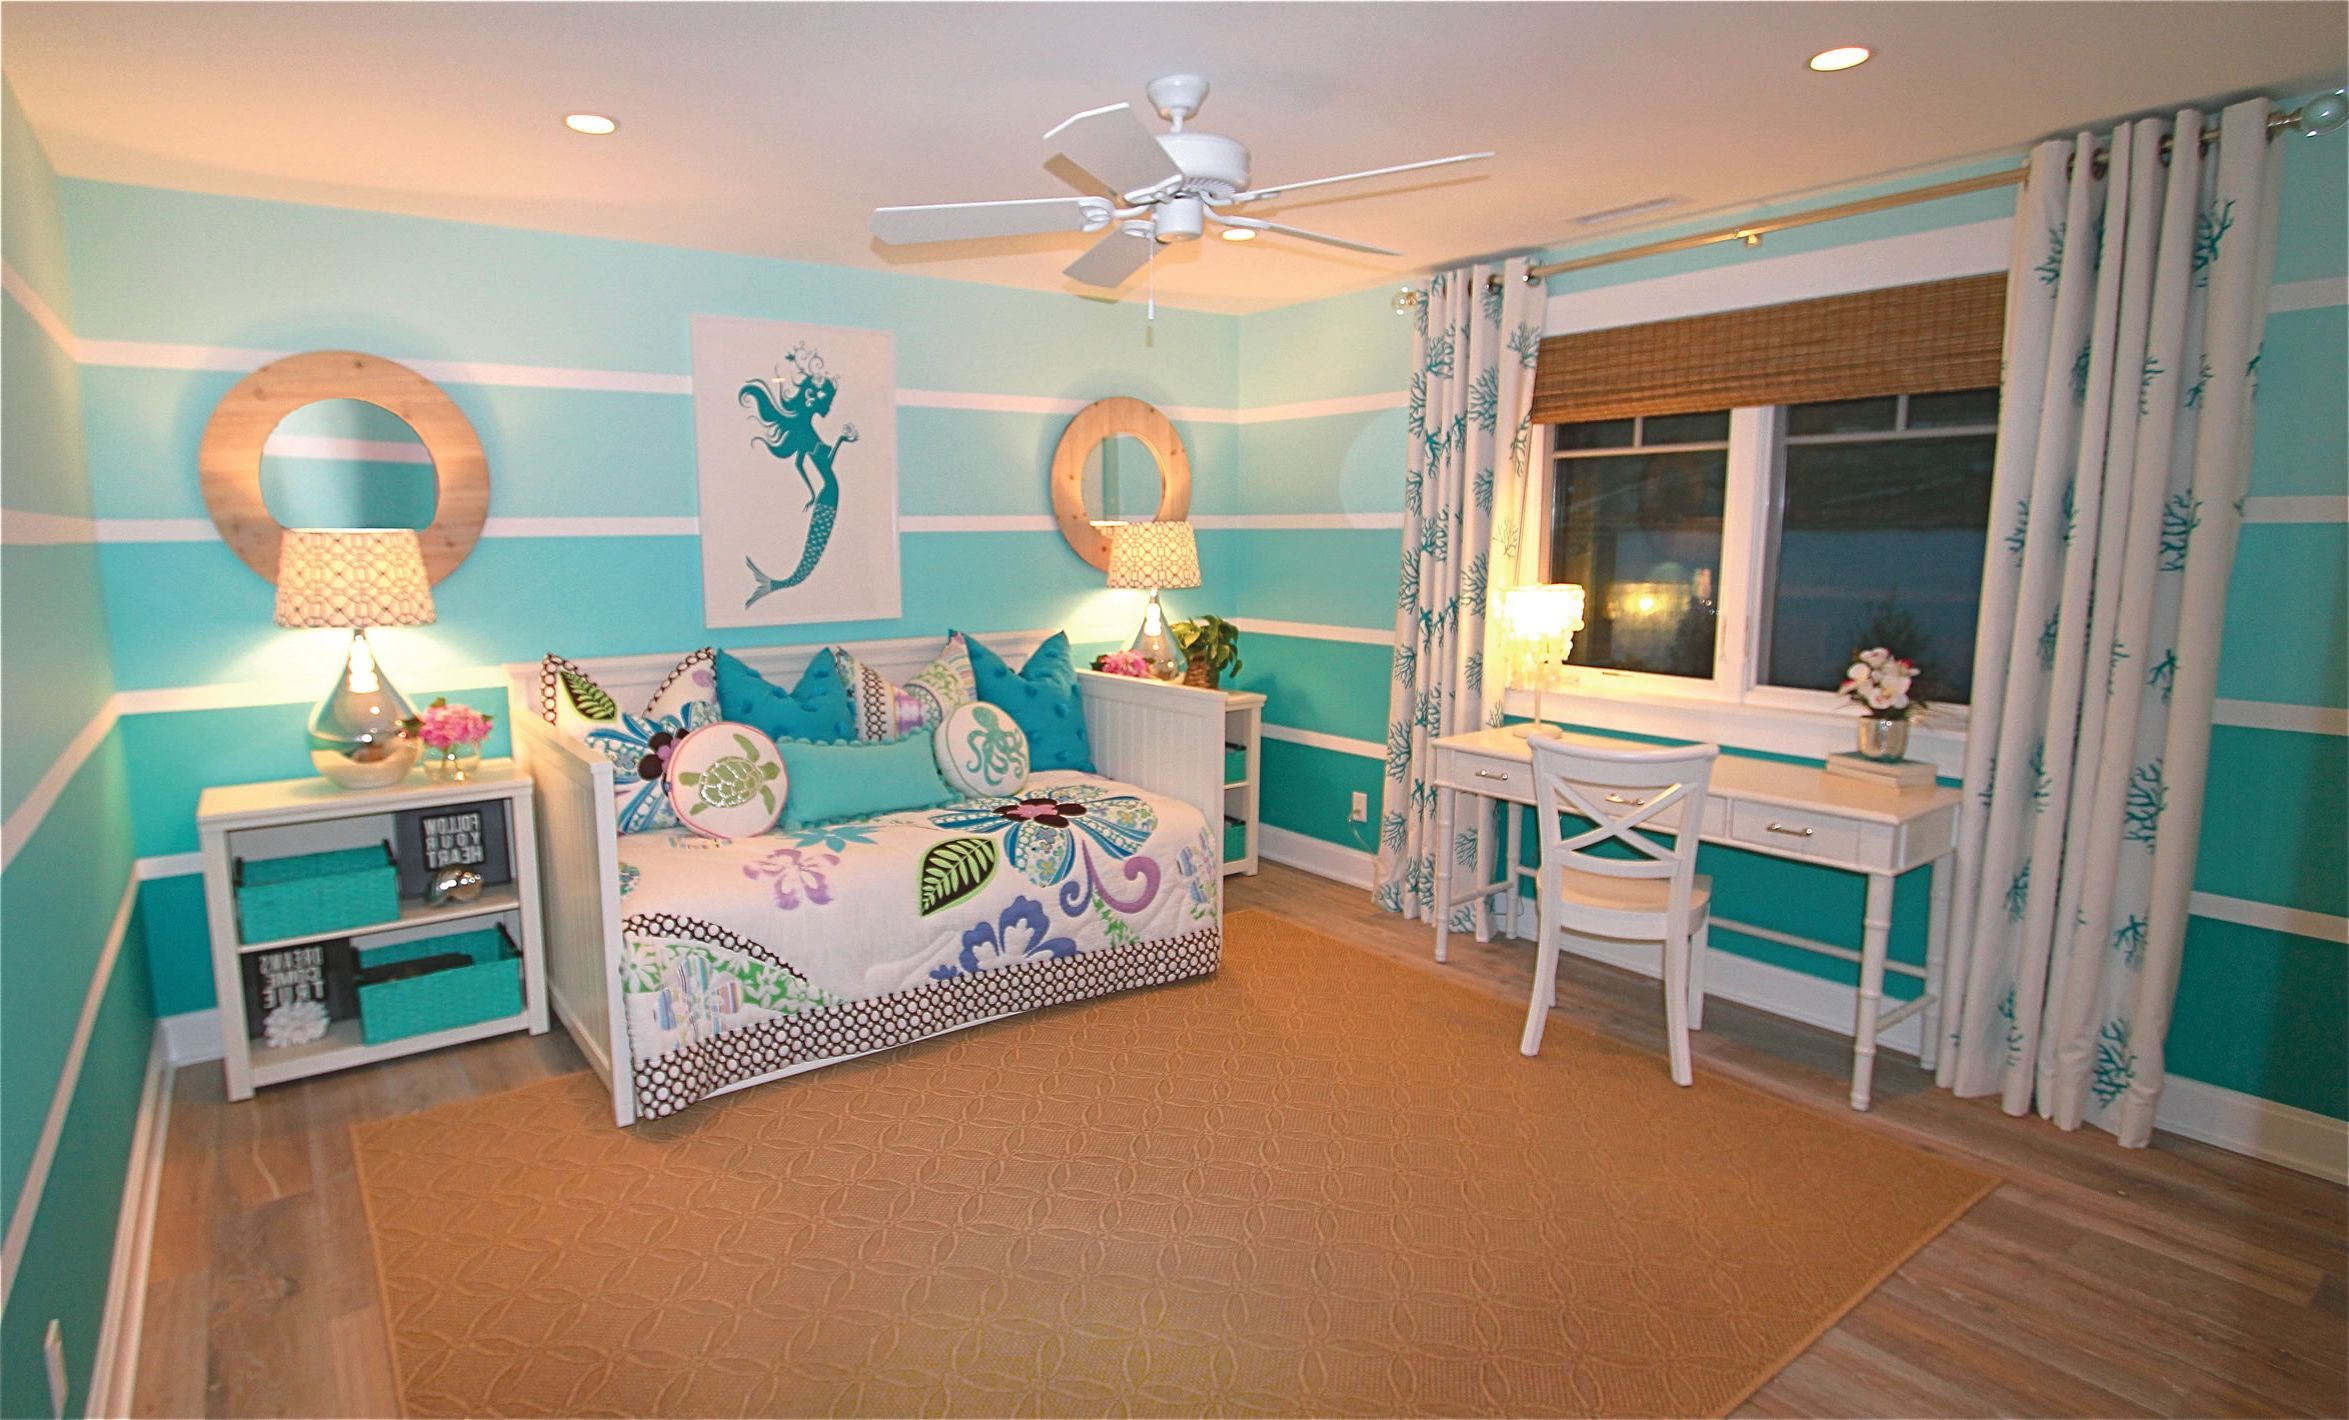 Some Breathtaking Images Of Great Room With Coastal Theme